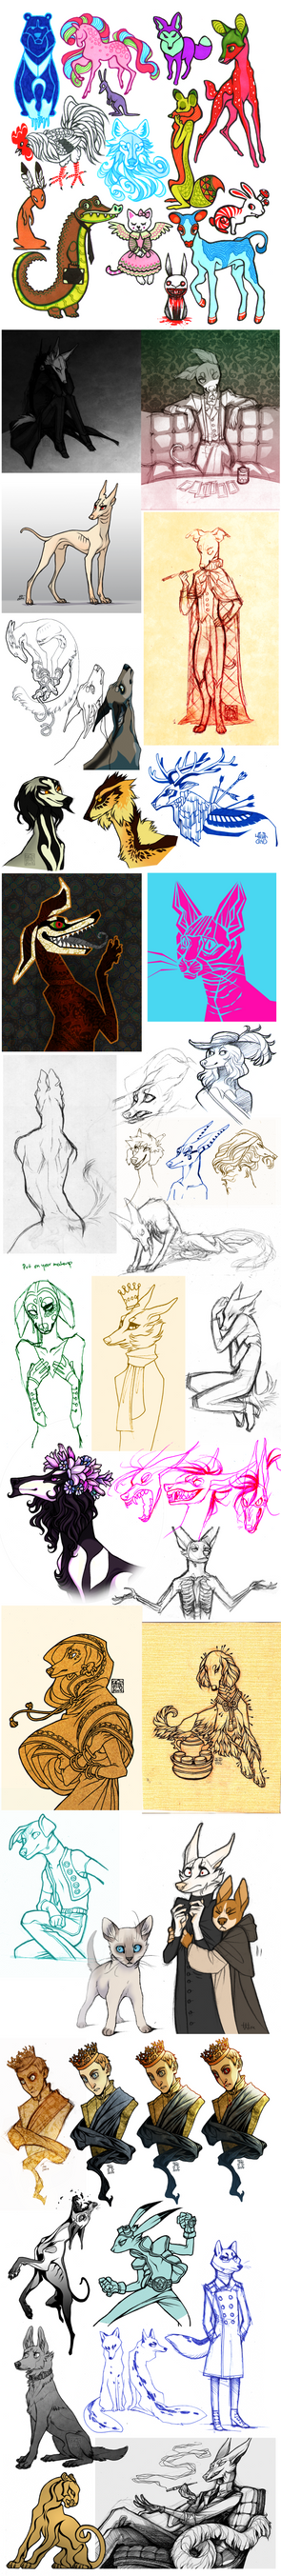 Sketch Dump 15 by CanisAlbus